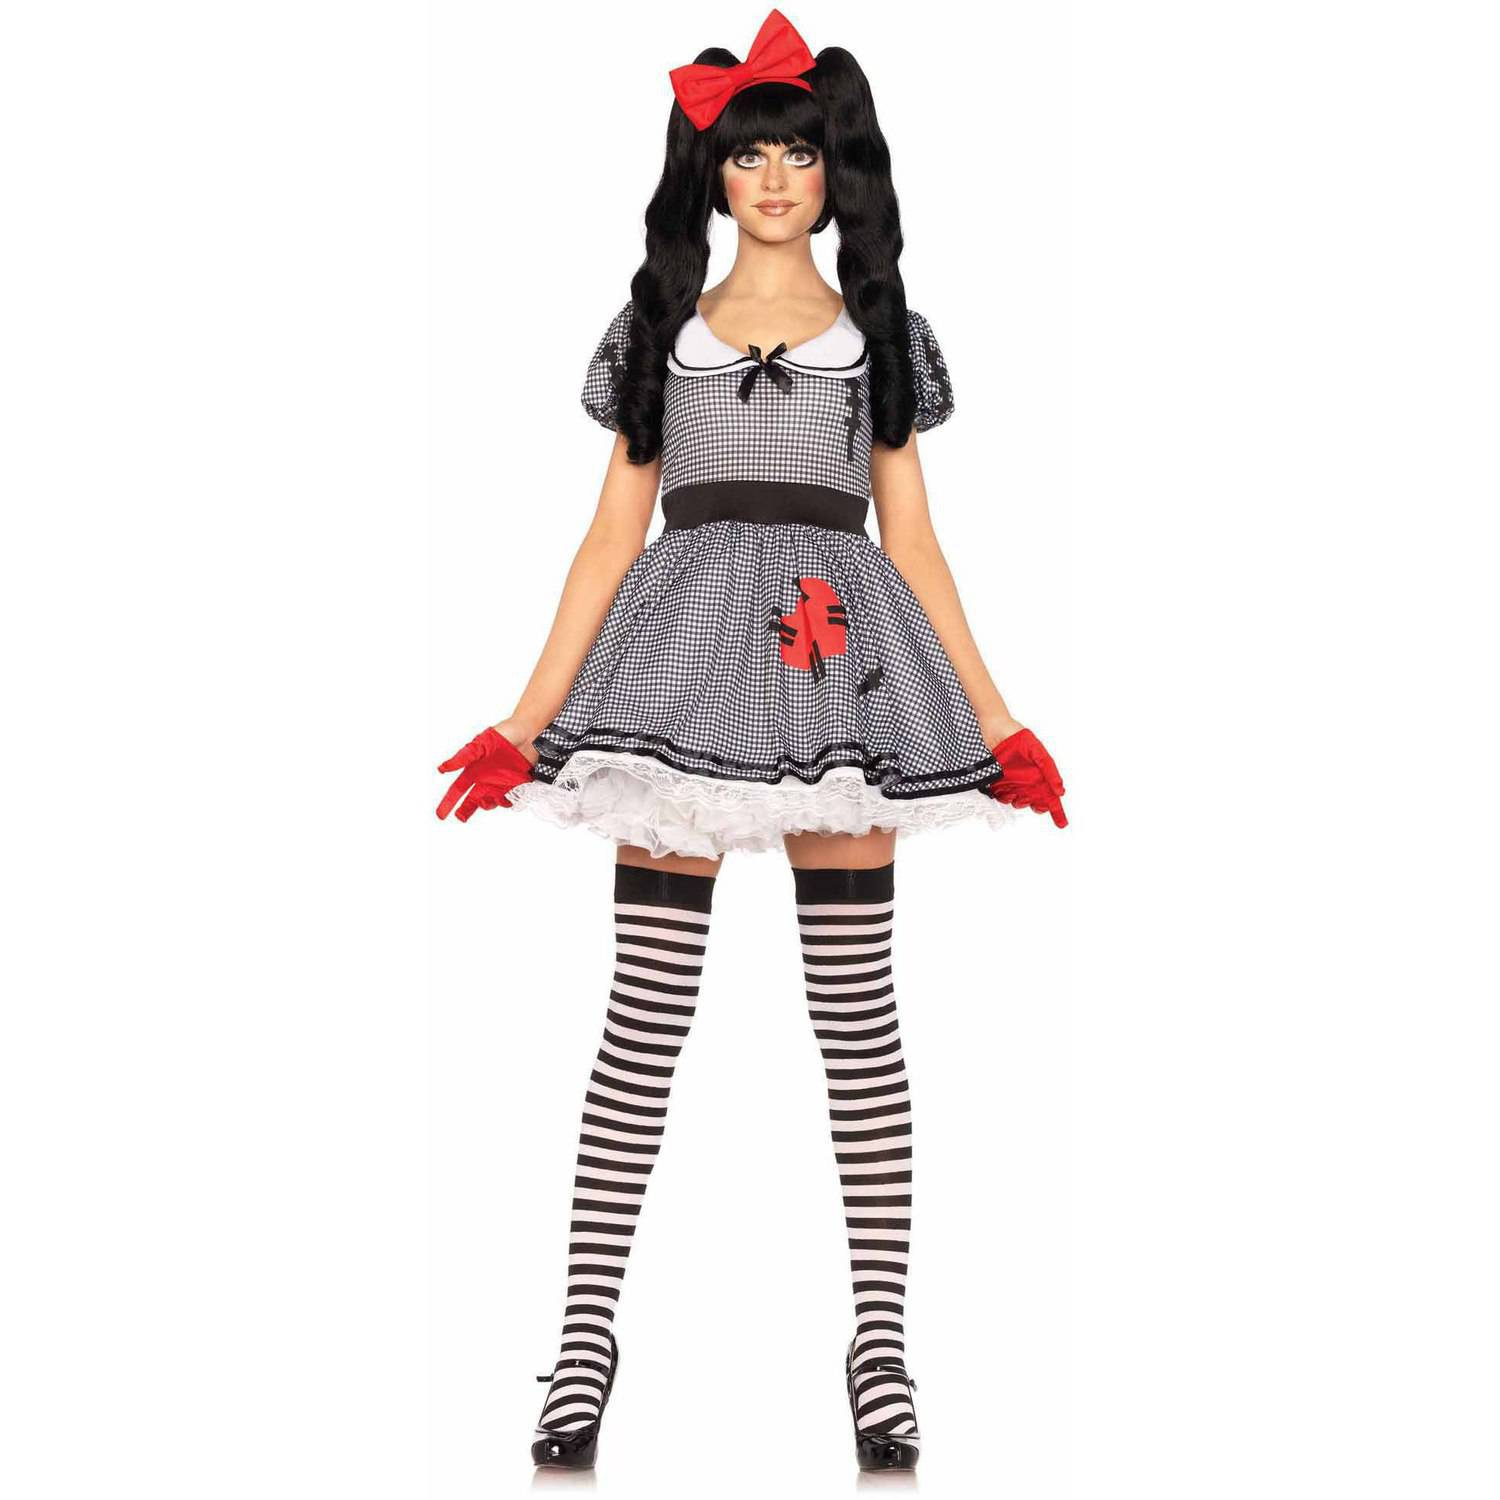 Leg Avenue 3-Piece Wind-Up Doll Adult Halloween Costume